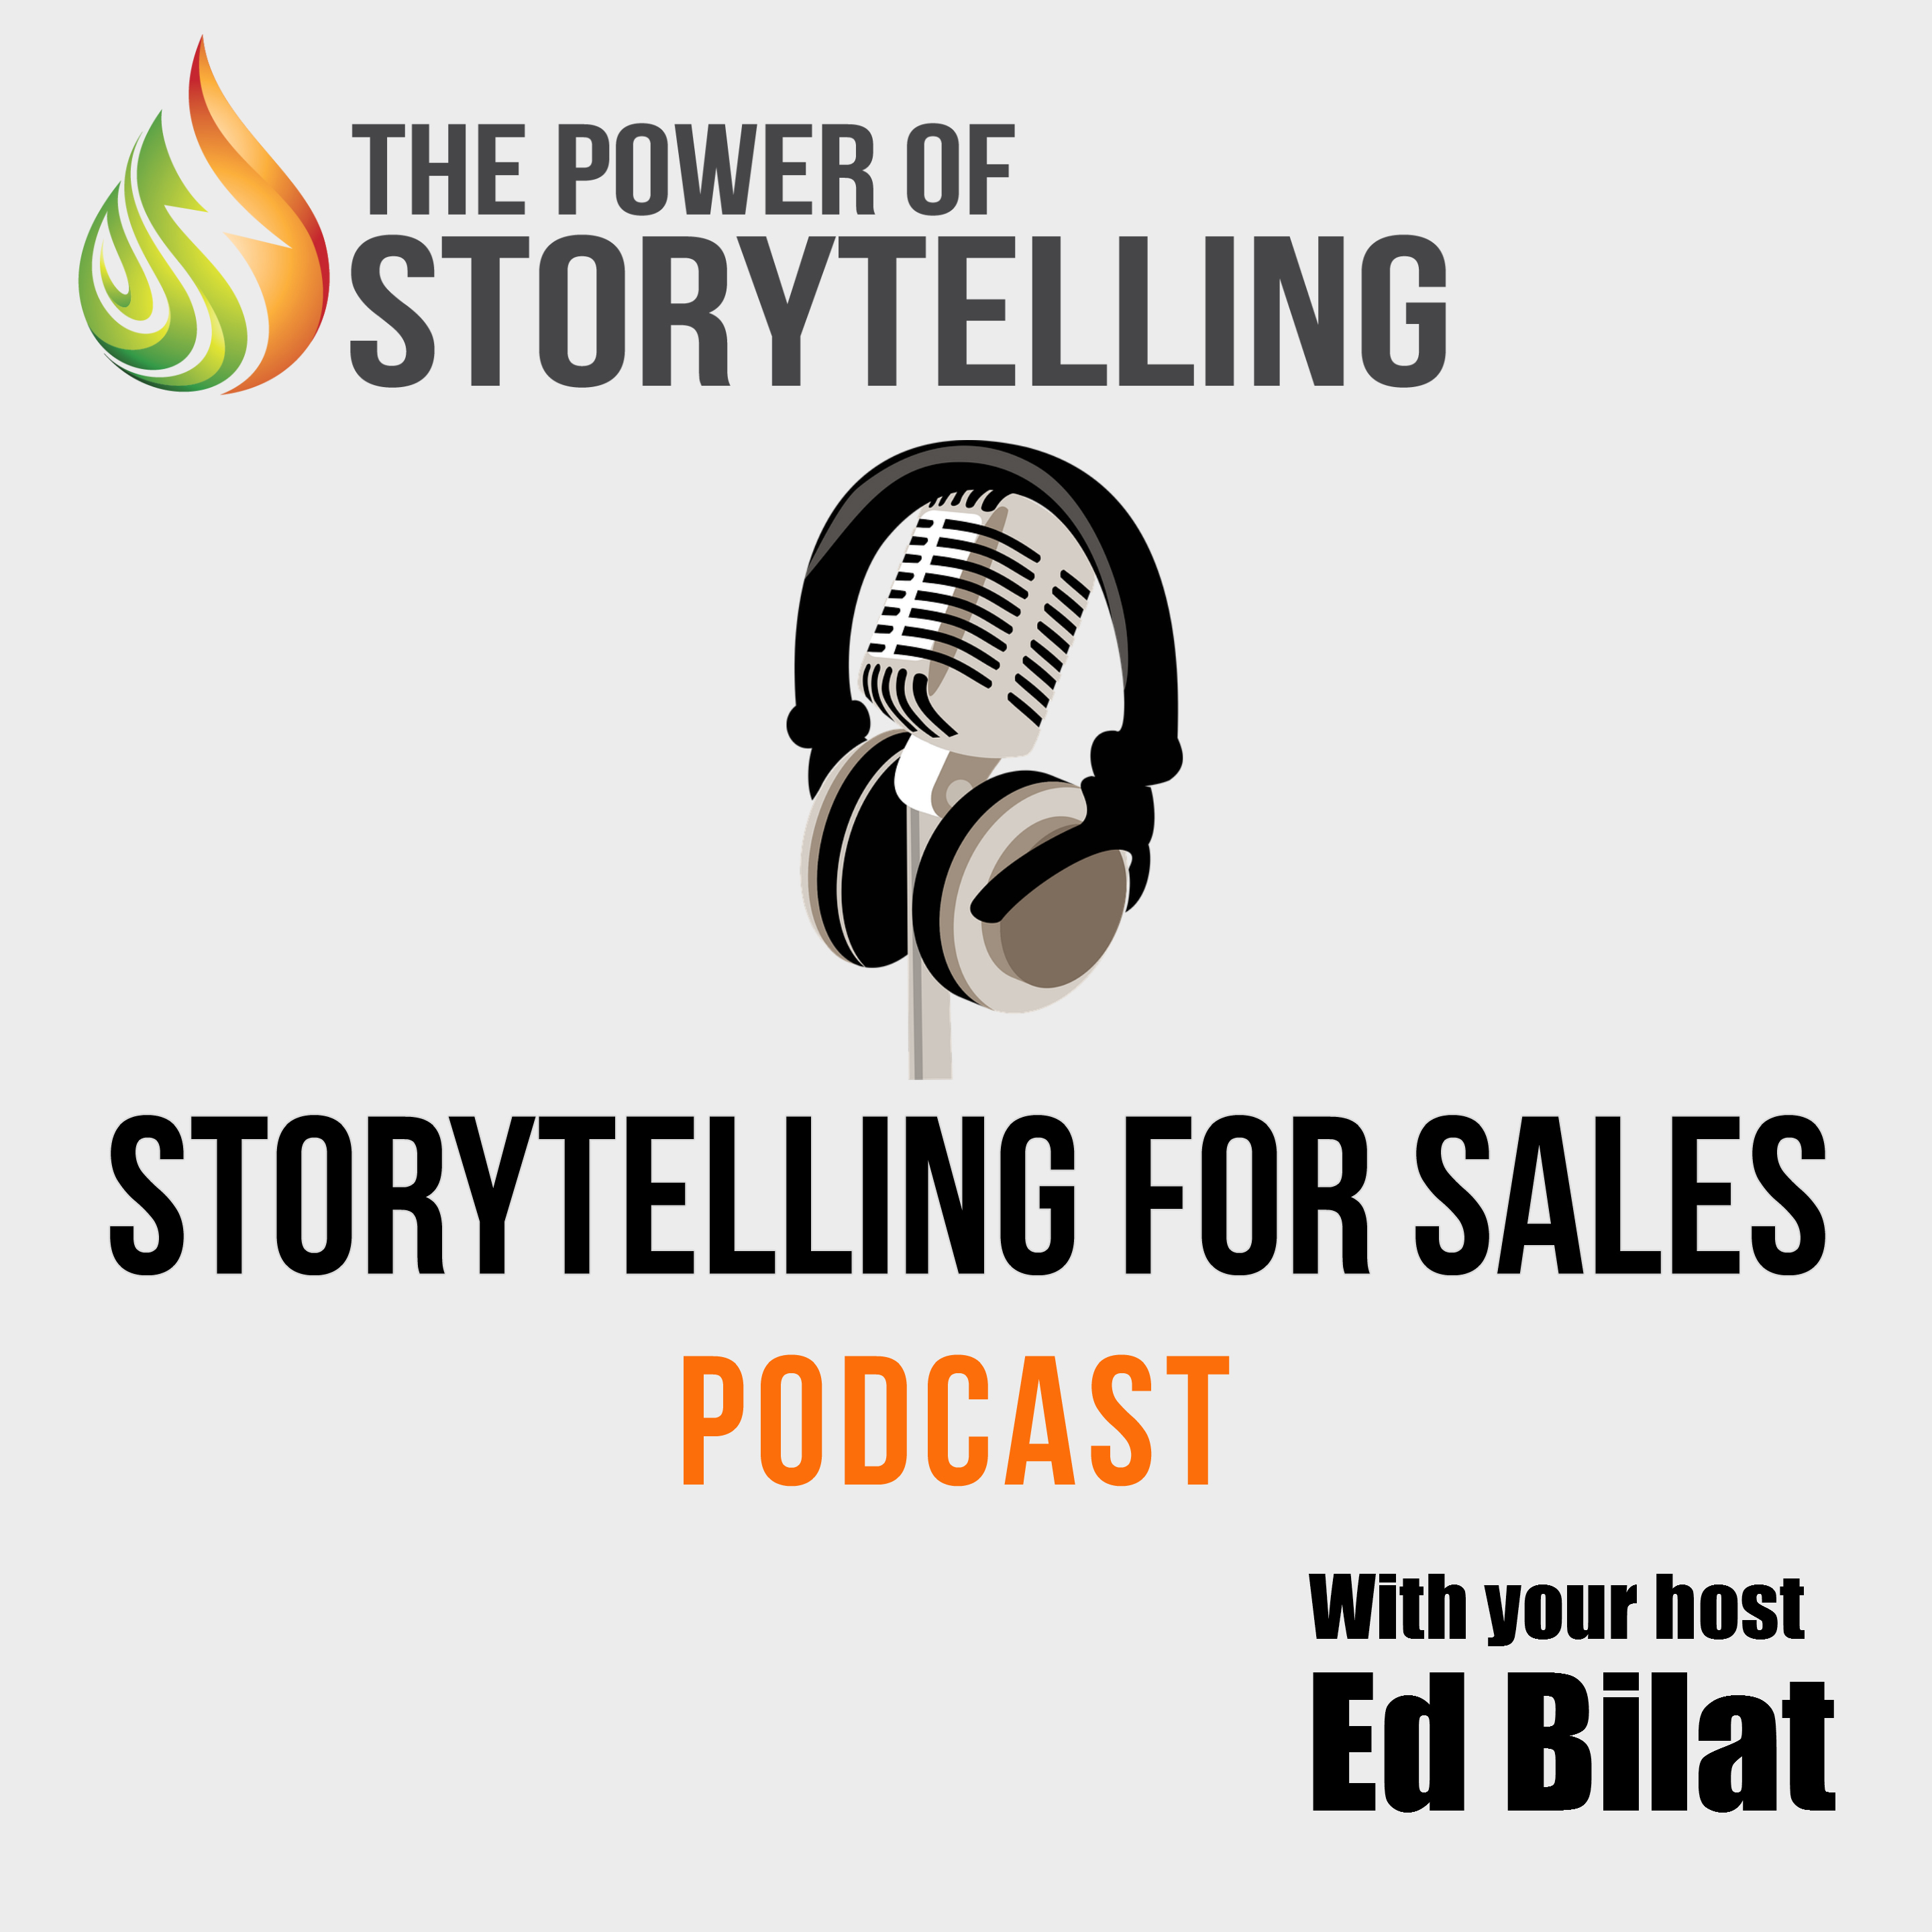 Storytelling for Sales Podcast show art